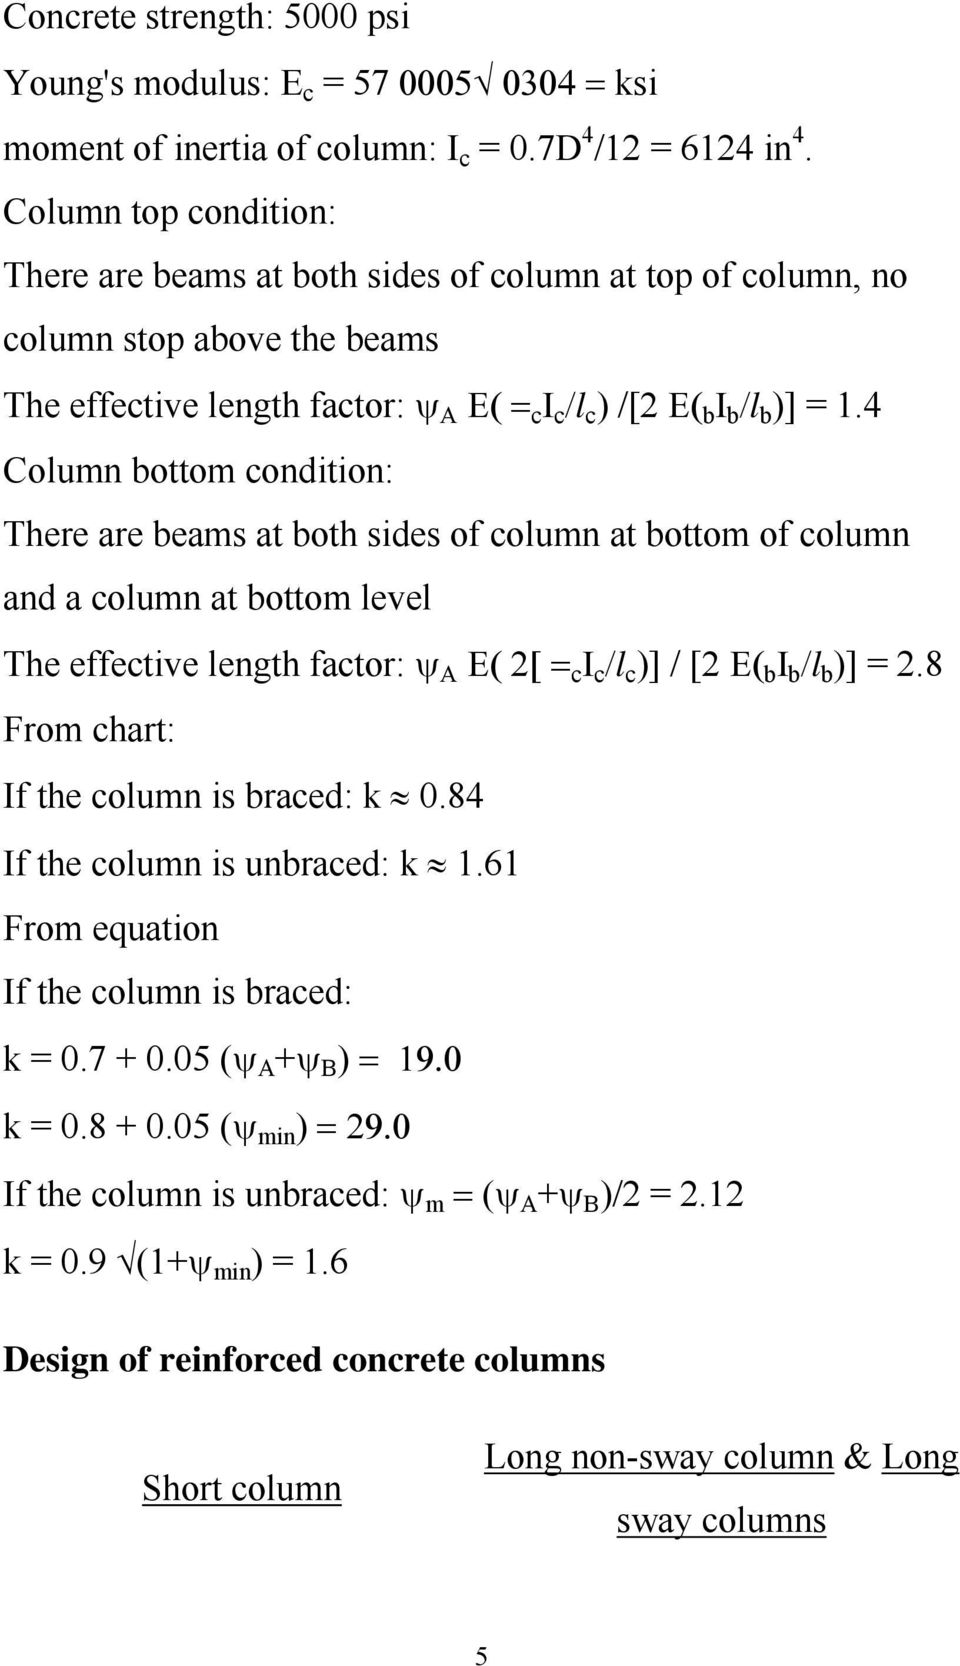 4 Column bottom condition: There are beams at both sides of column at bottom of column and a column at bottom level The effective length factor: ψ Α Ε( 2[ = c Ι c /l c )] / [2 Ε( b Ι b /l b )] = 2.